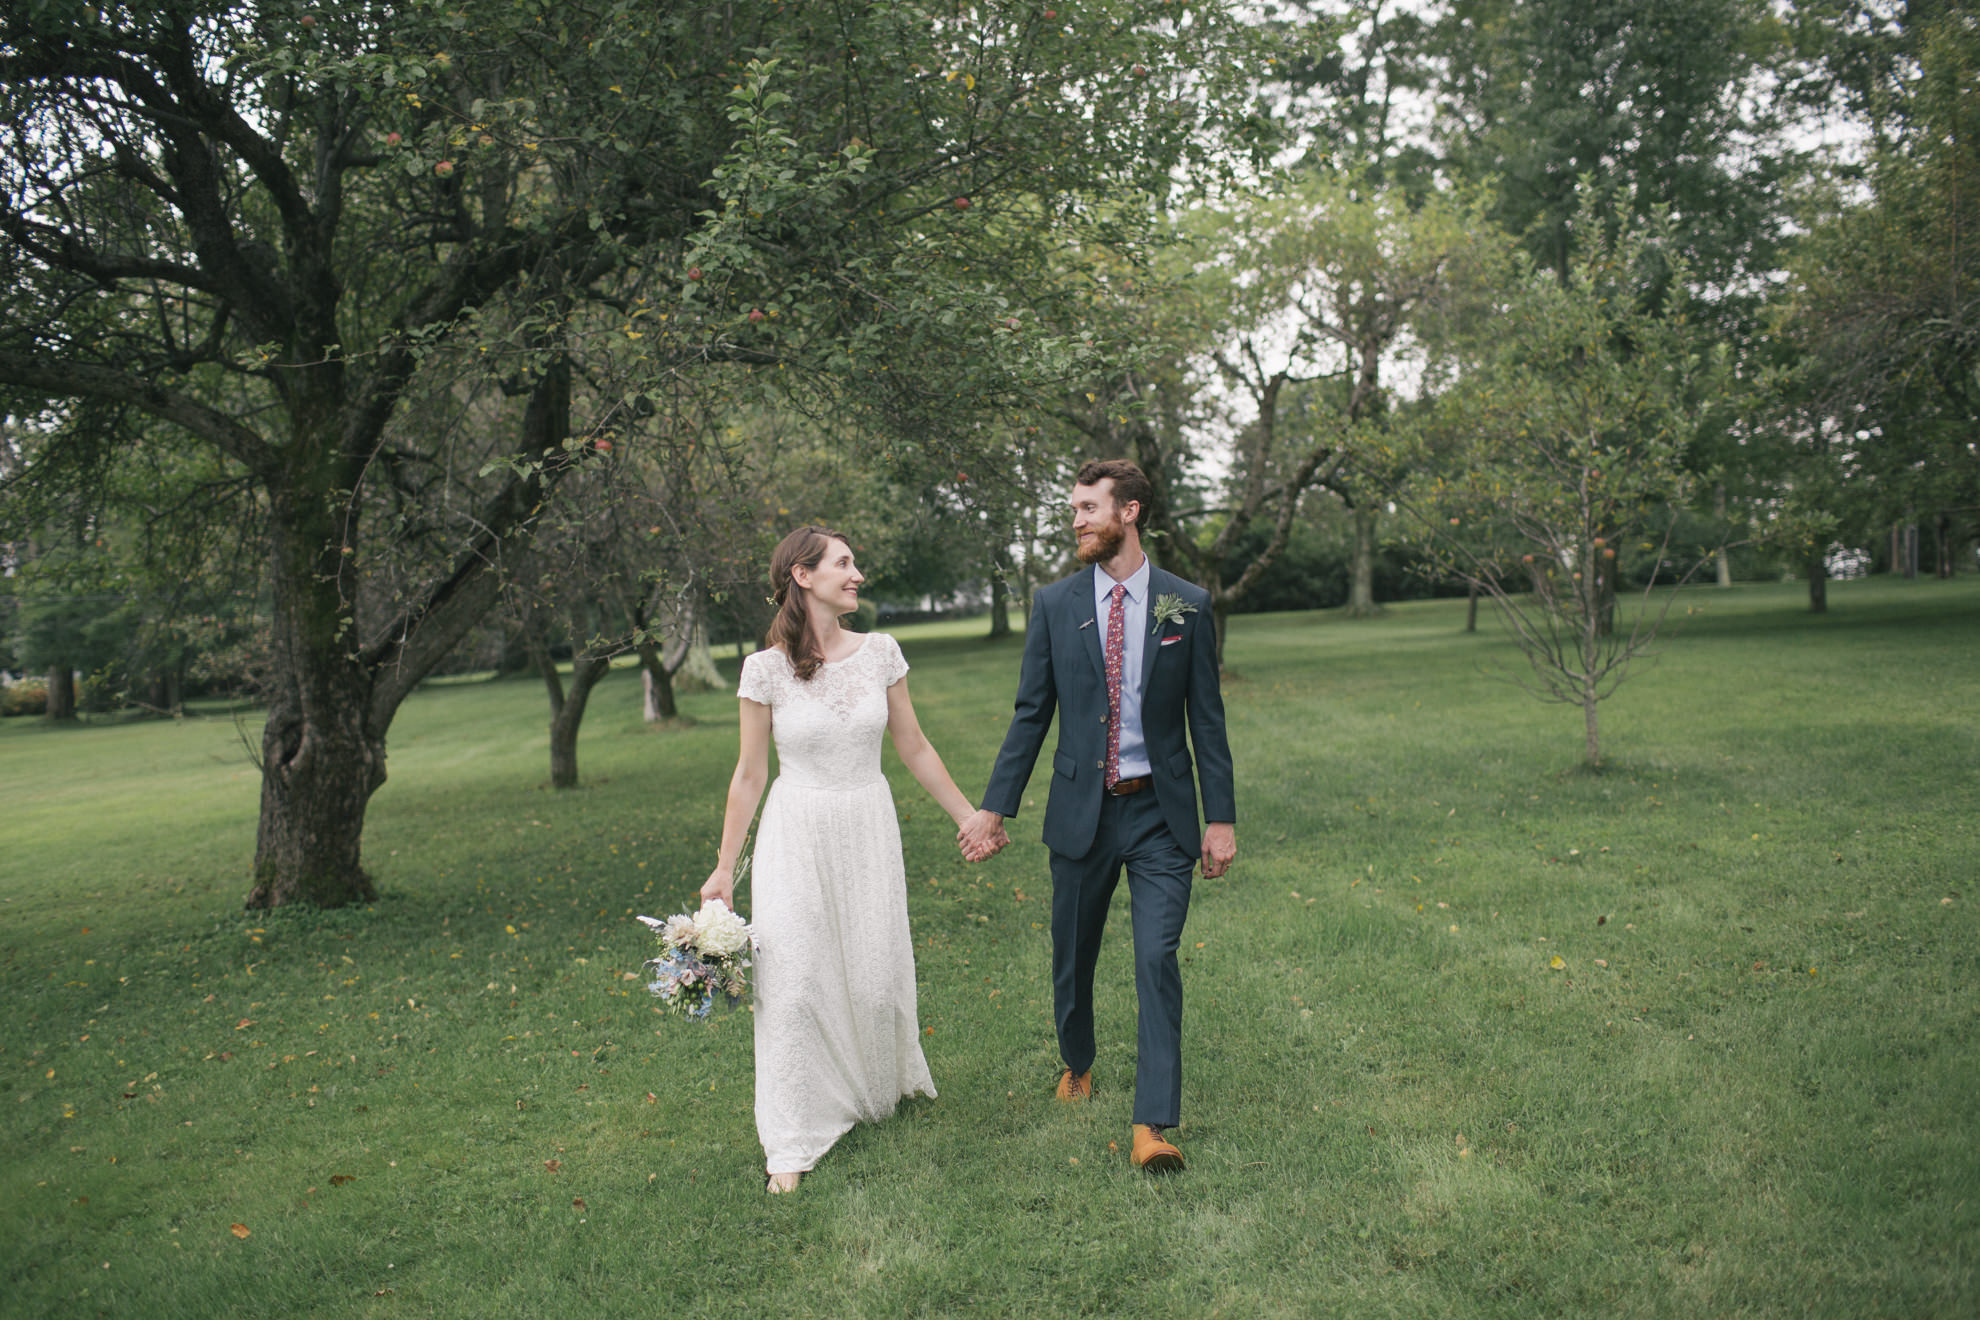 intimate-backyard-wedding-upstate-new-york-wedding